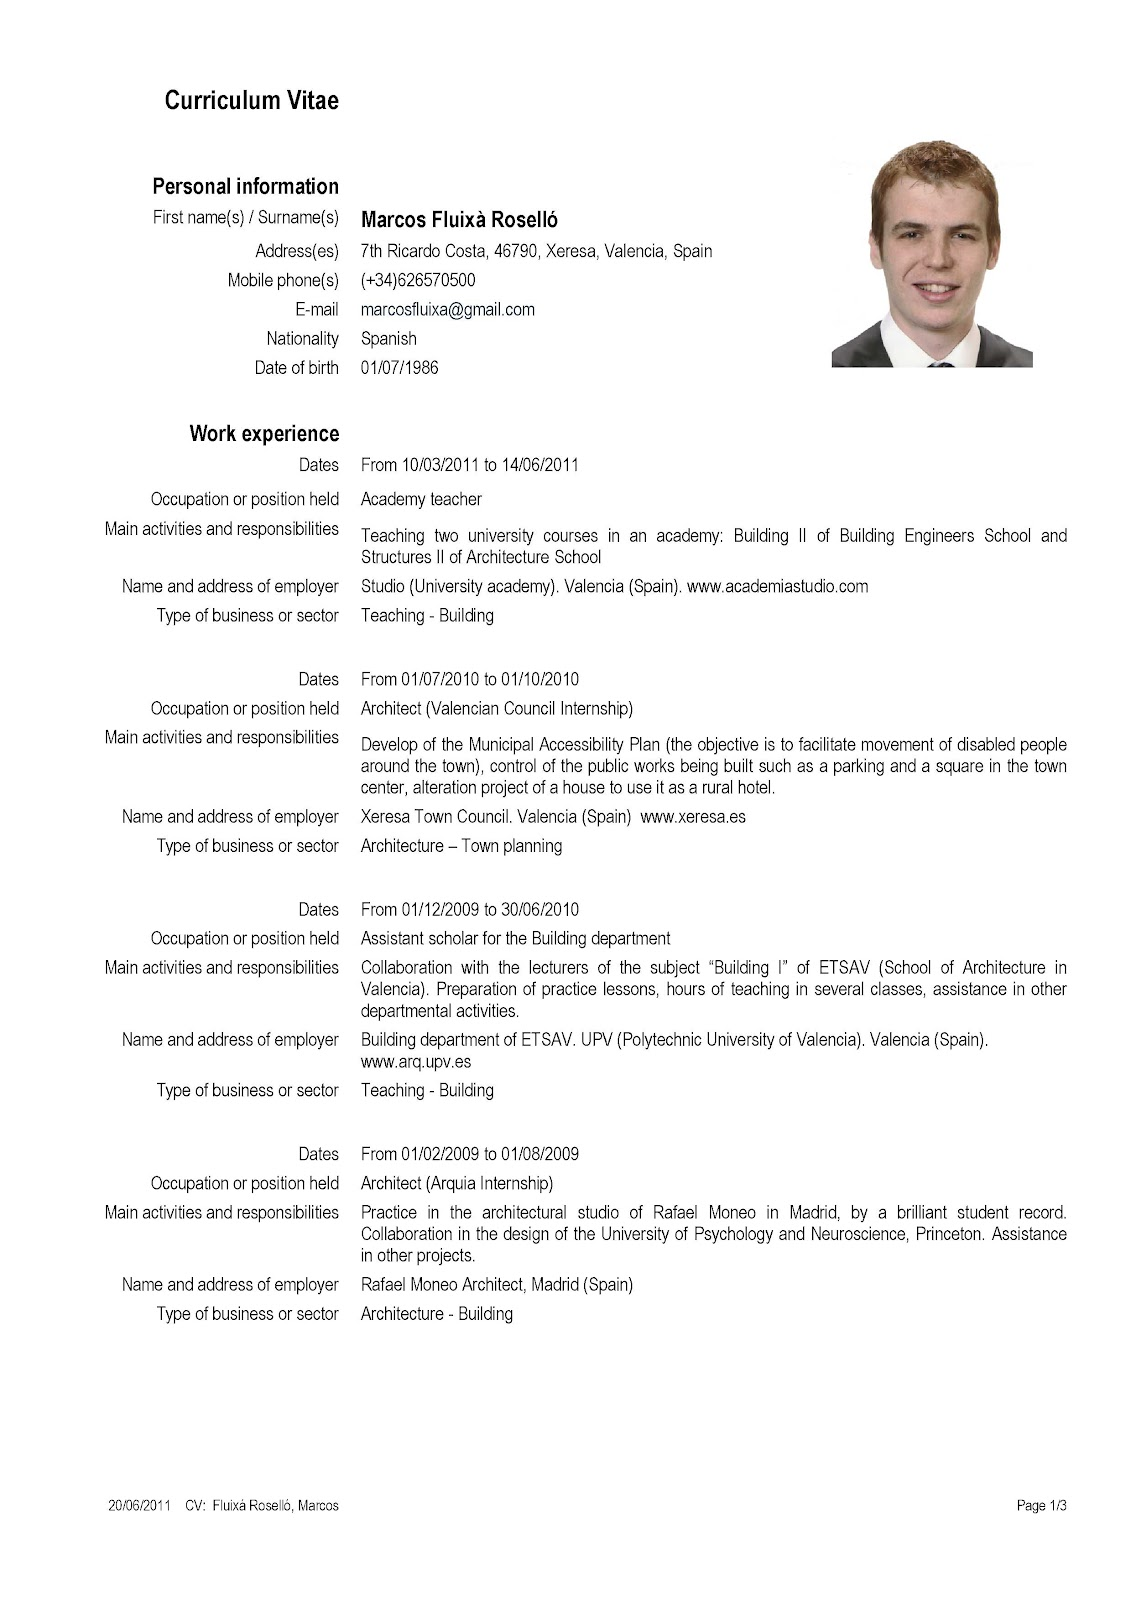 How to write your CV and cover letter in French